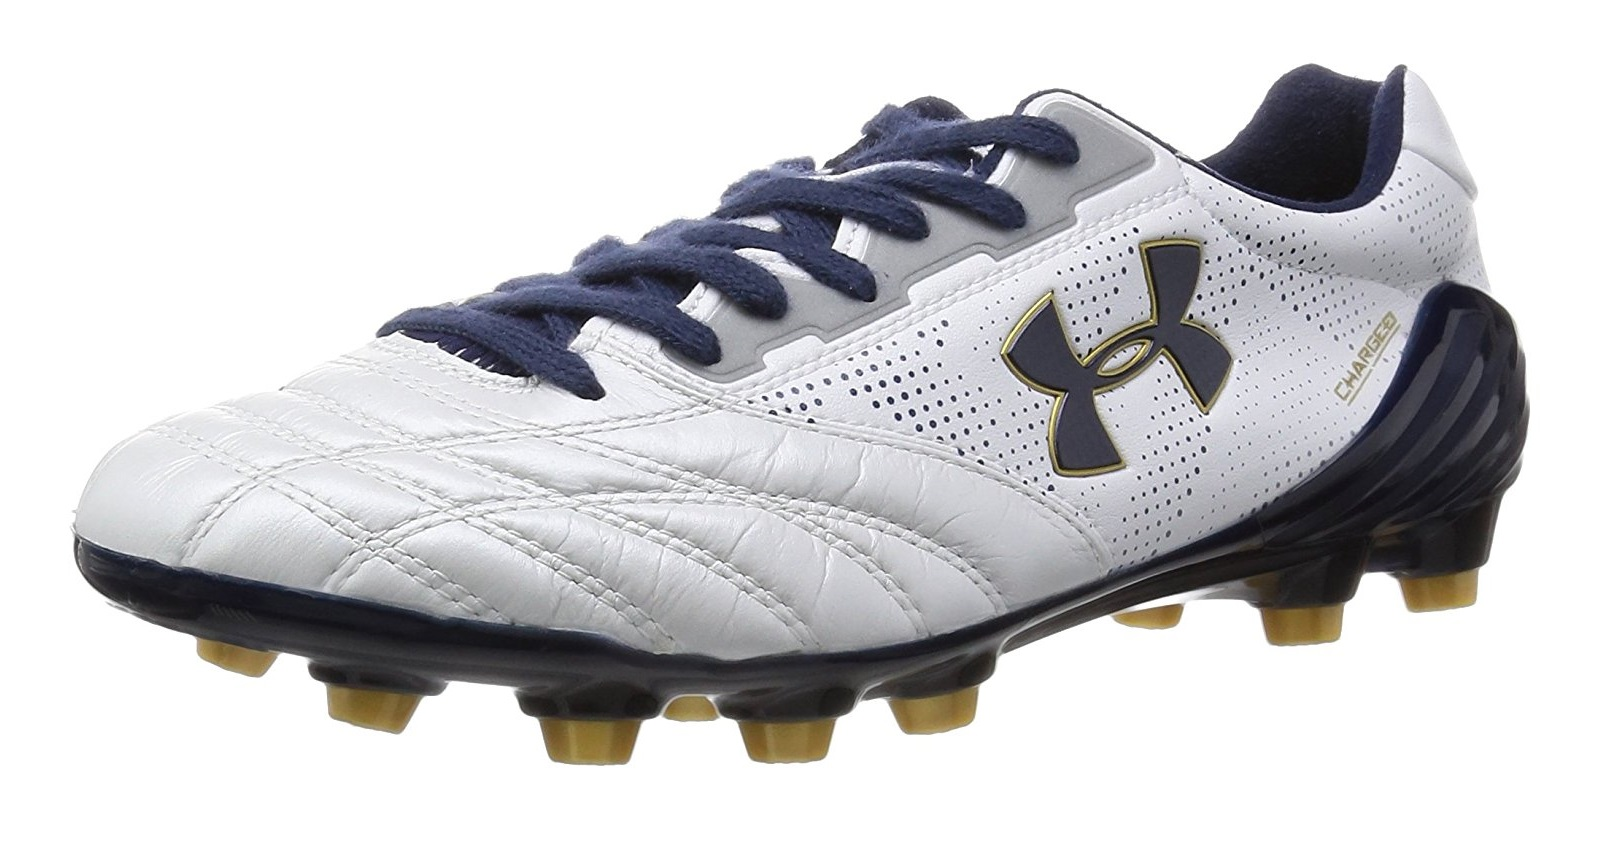 f8e4cb86c85 ... width and it is rare to find speed boots that fit wide, which as can be  seen from other boots in this article, Japanese players tend to have wider  feet.